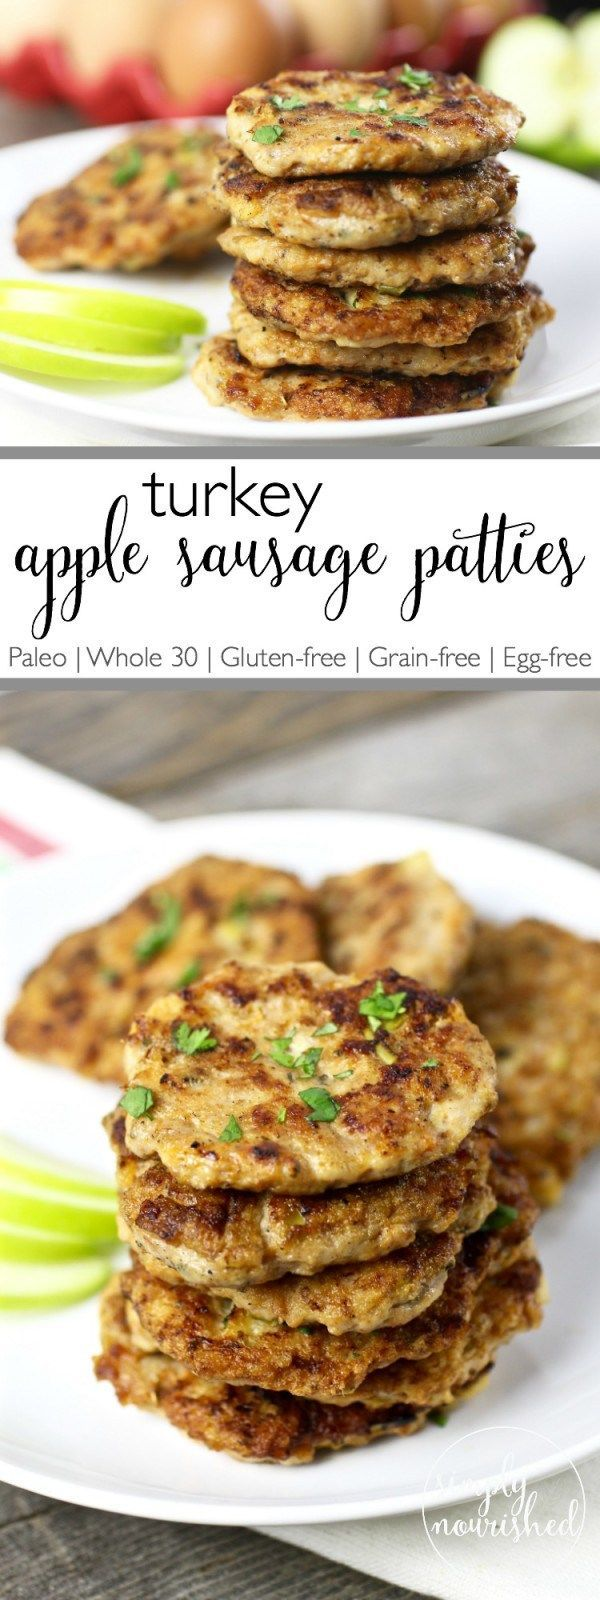 Turkey Apple Sausage Patties | Recipe | Protein, Eggs and Apple ...